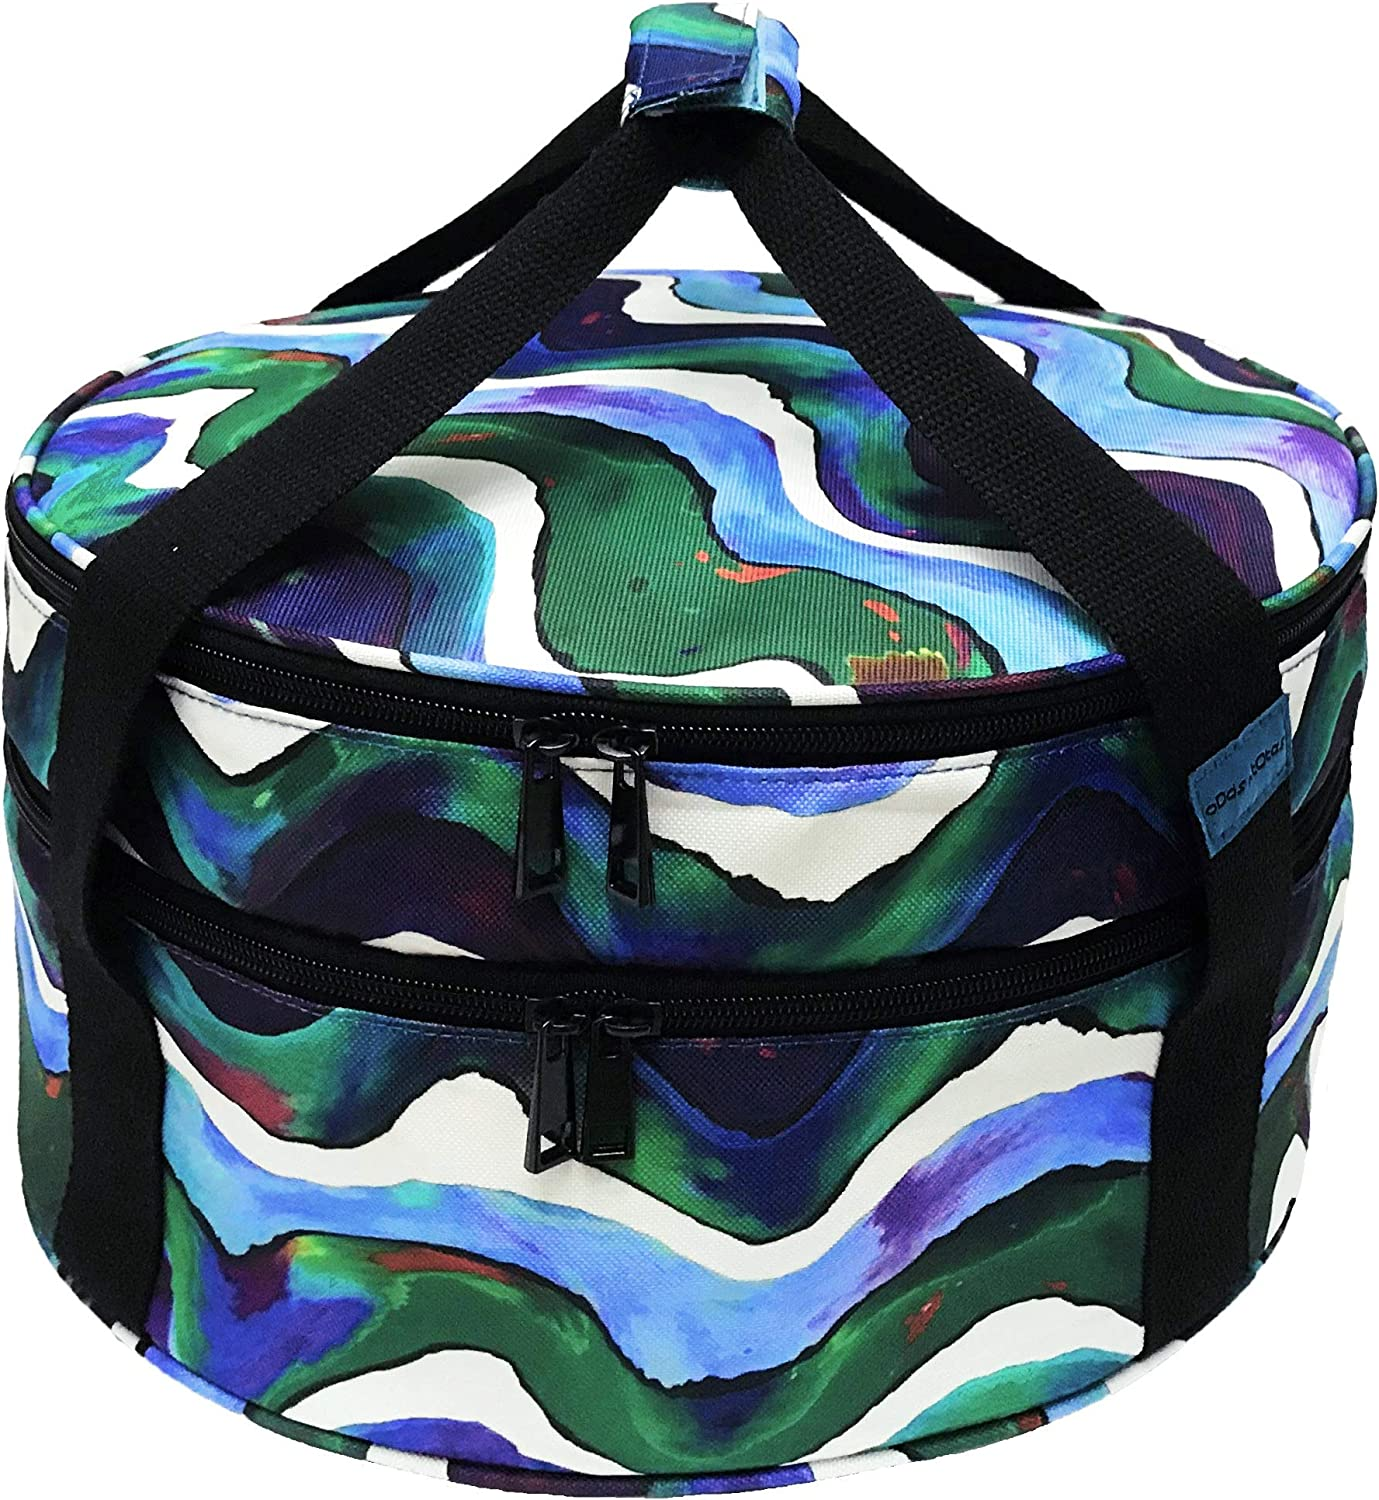 Casserole Carrier (Round), Casserole Carrying Case, Pie Carrier, Insulated Potluck Carrier, Thermal Bag for Cold & Hot Food, Party Dish, Dessert (Double Decker, Collapsible)